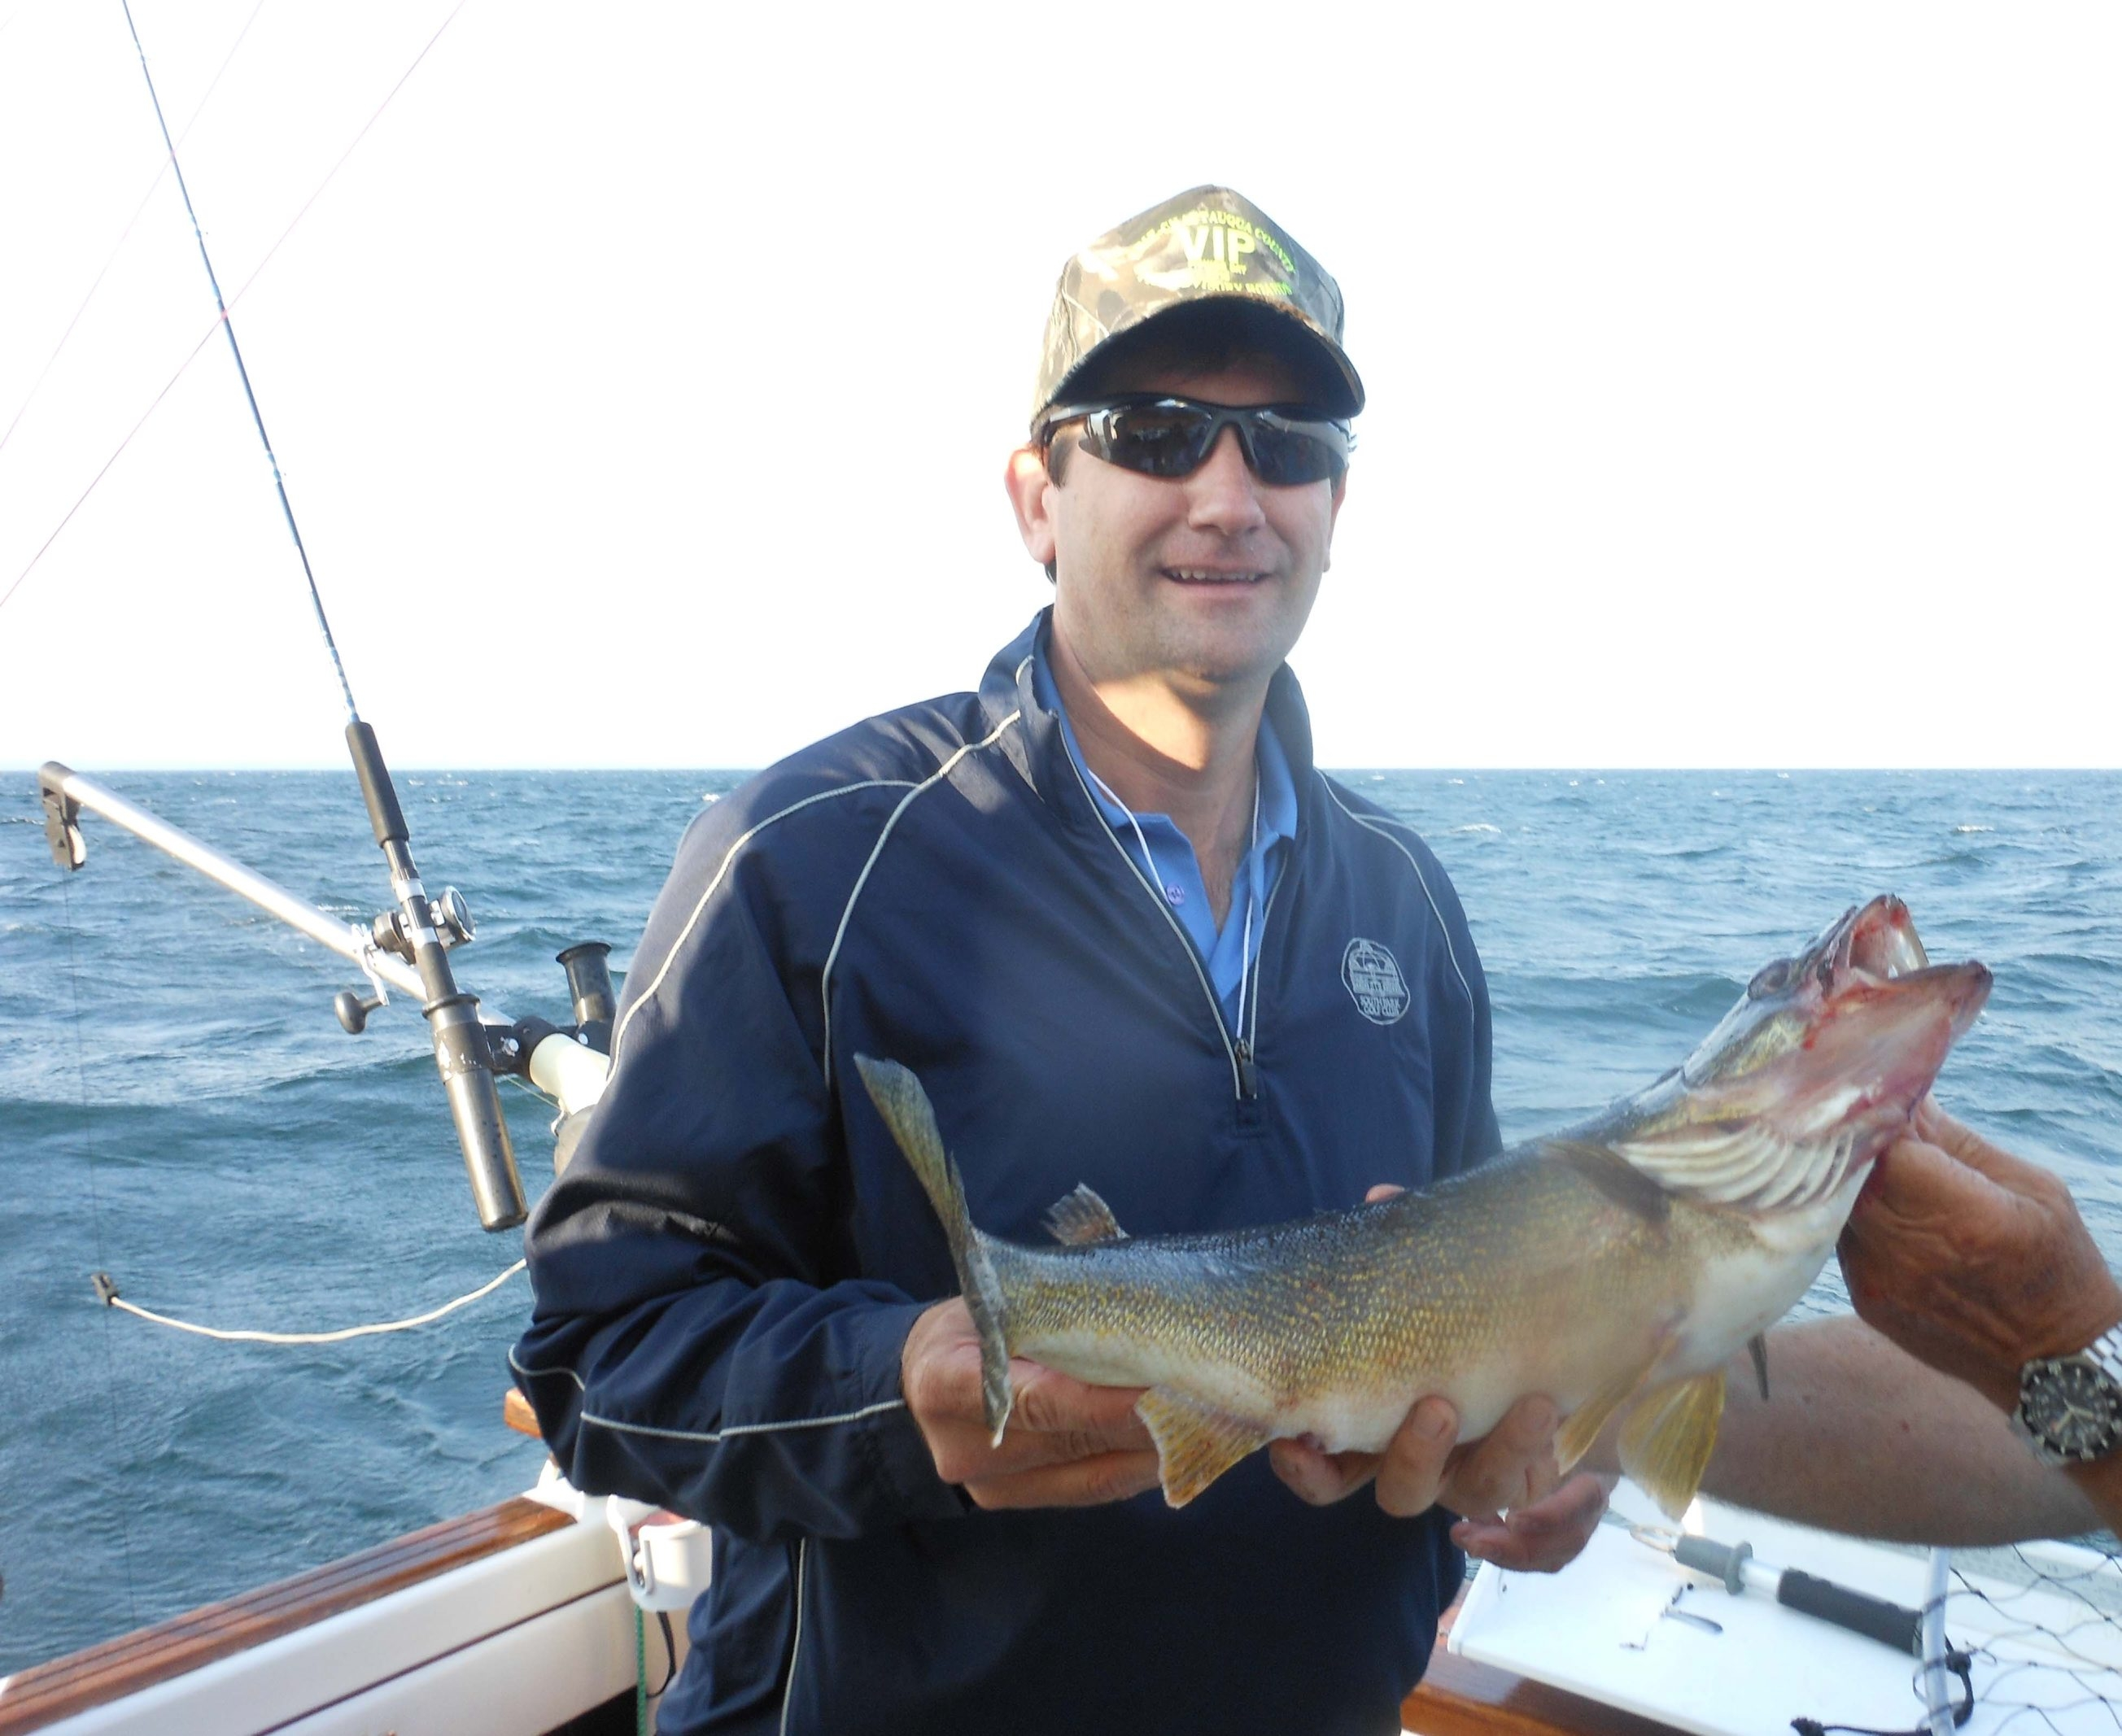 Erie County Executive Mark Poloncarz caught one nice walleye during a legislators VIP Fishing Day at Dunkirk Harbor on Wednesday.